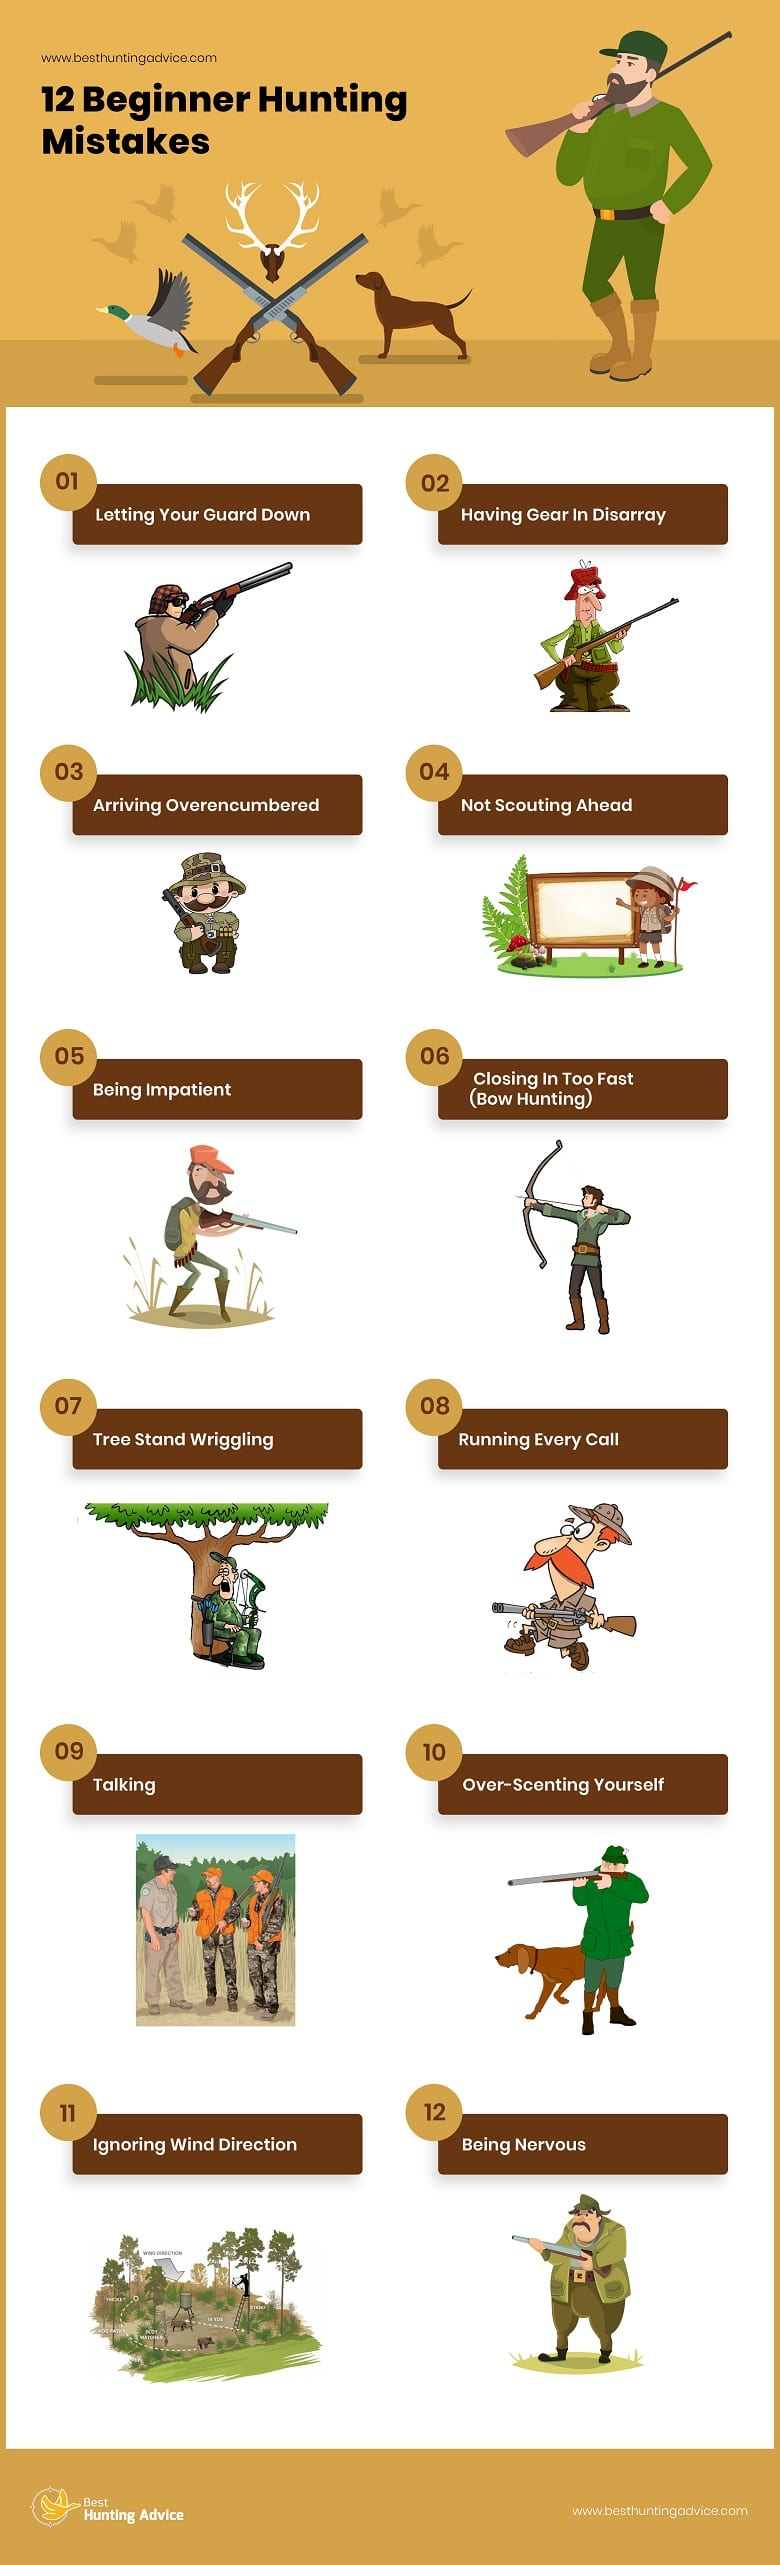 Hunting Mistakes